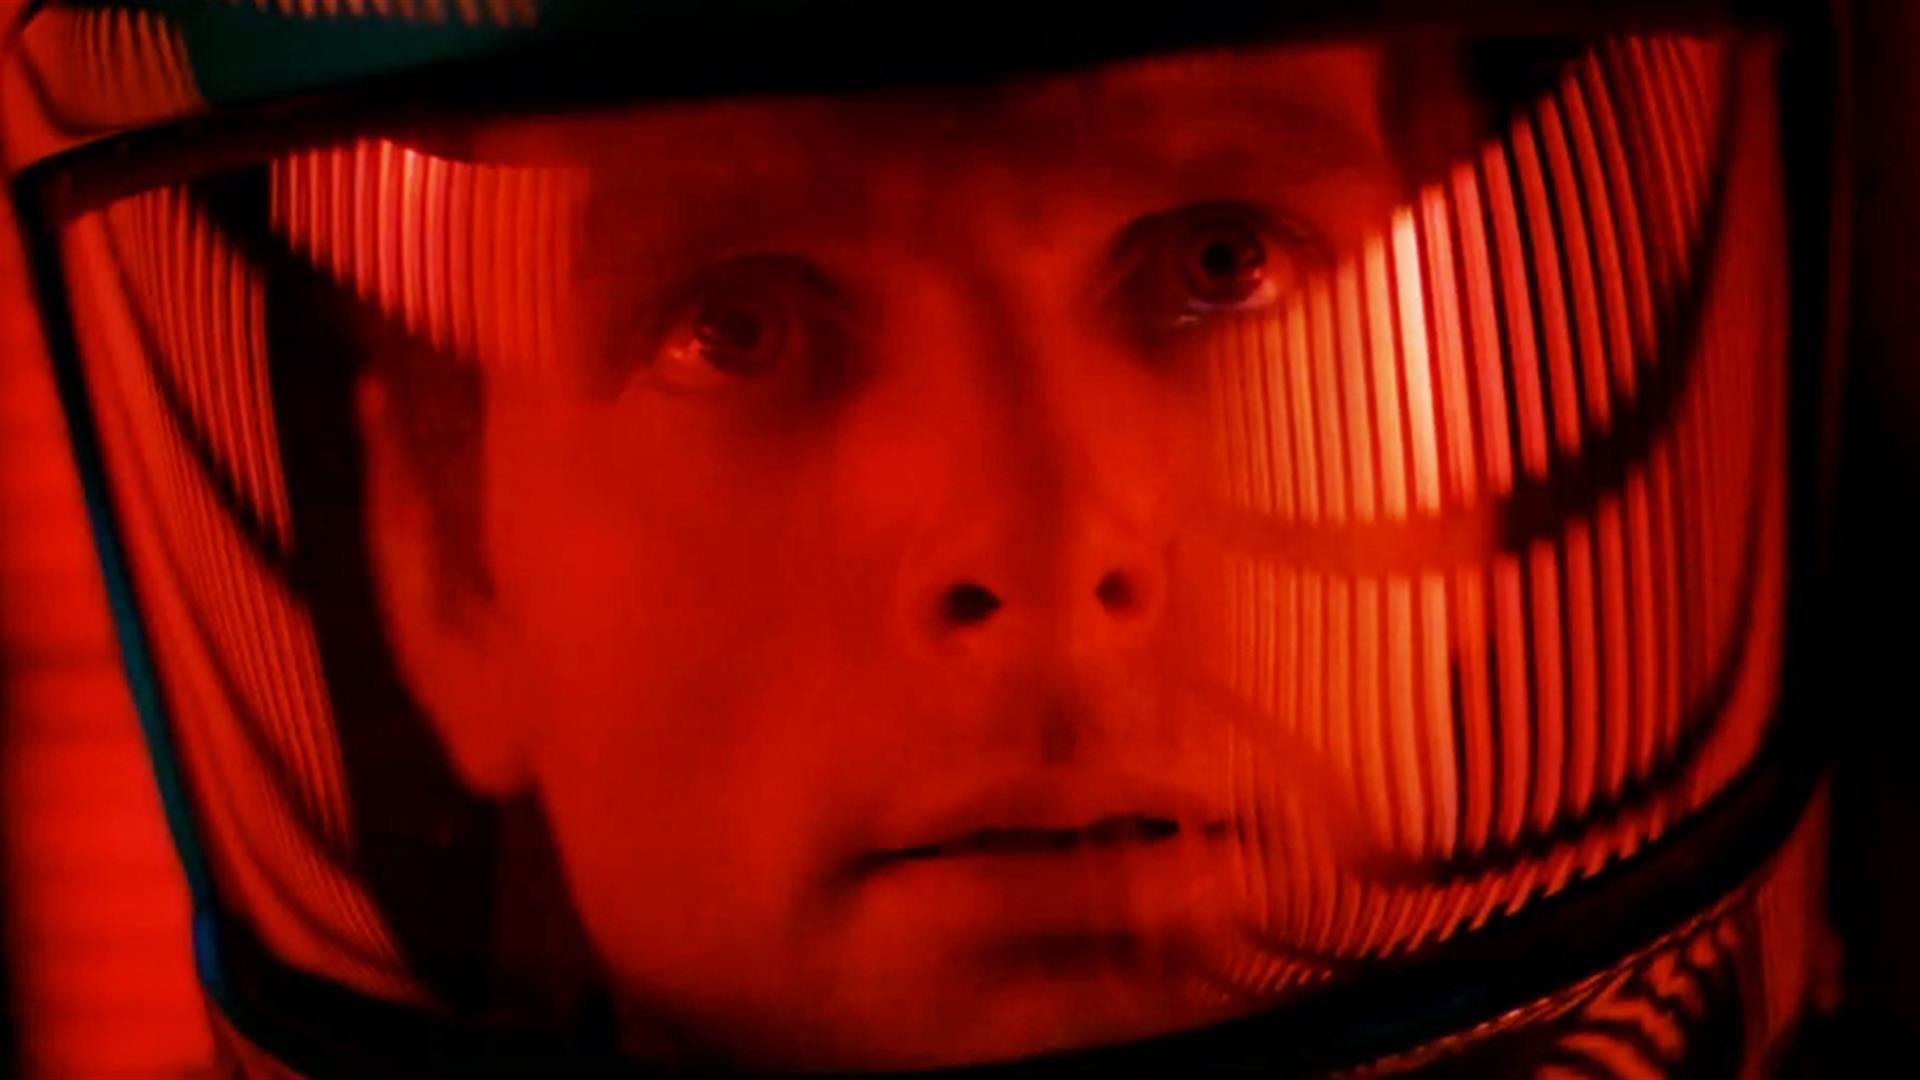 James Cameron Says 2001 A Space Odyssey Lacks Emotional Balls